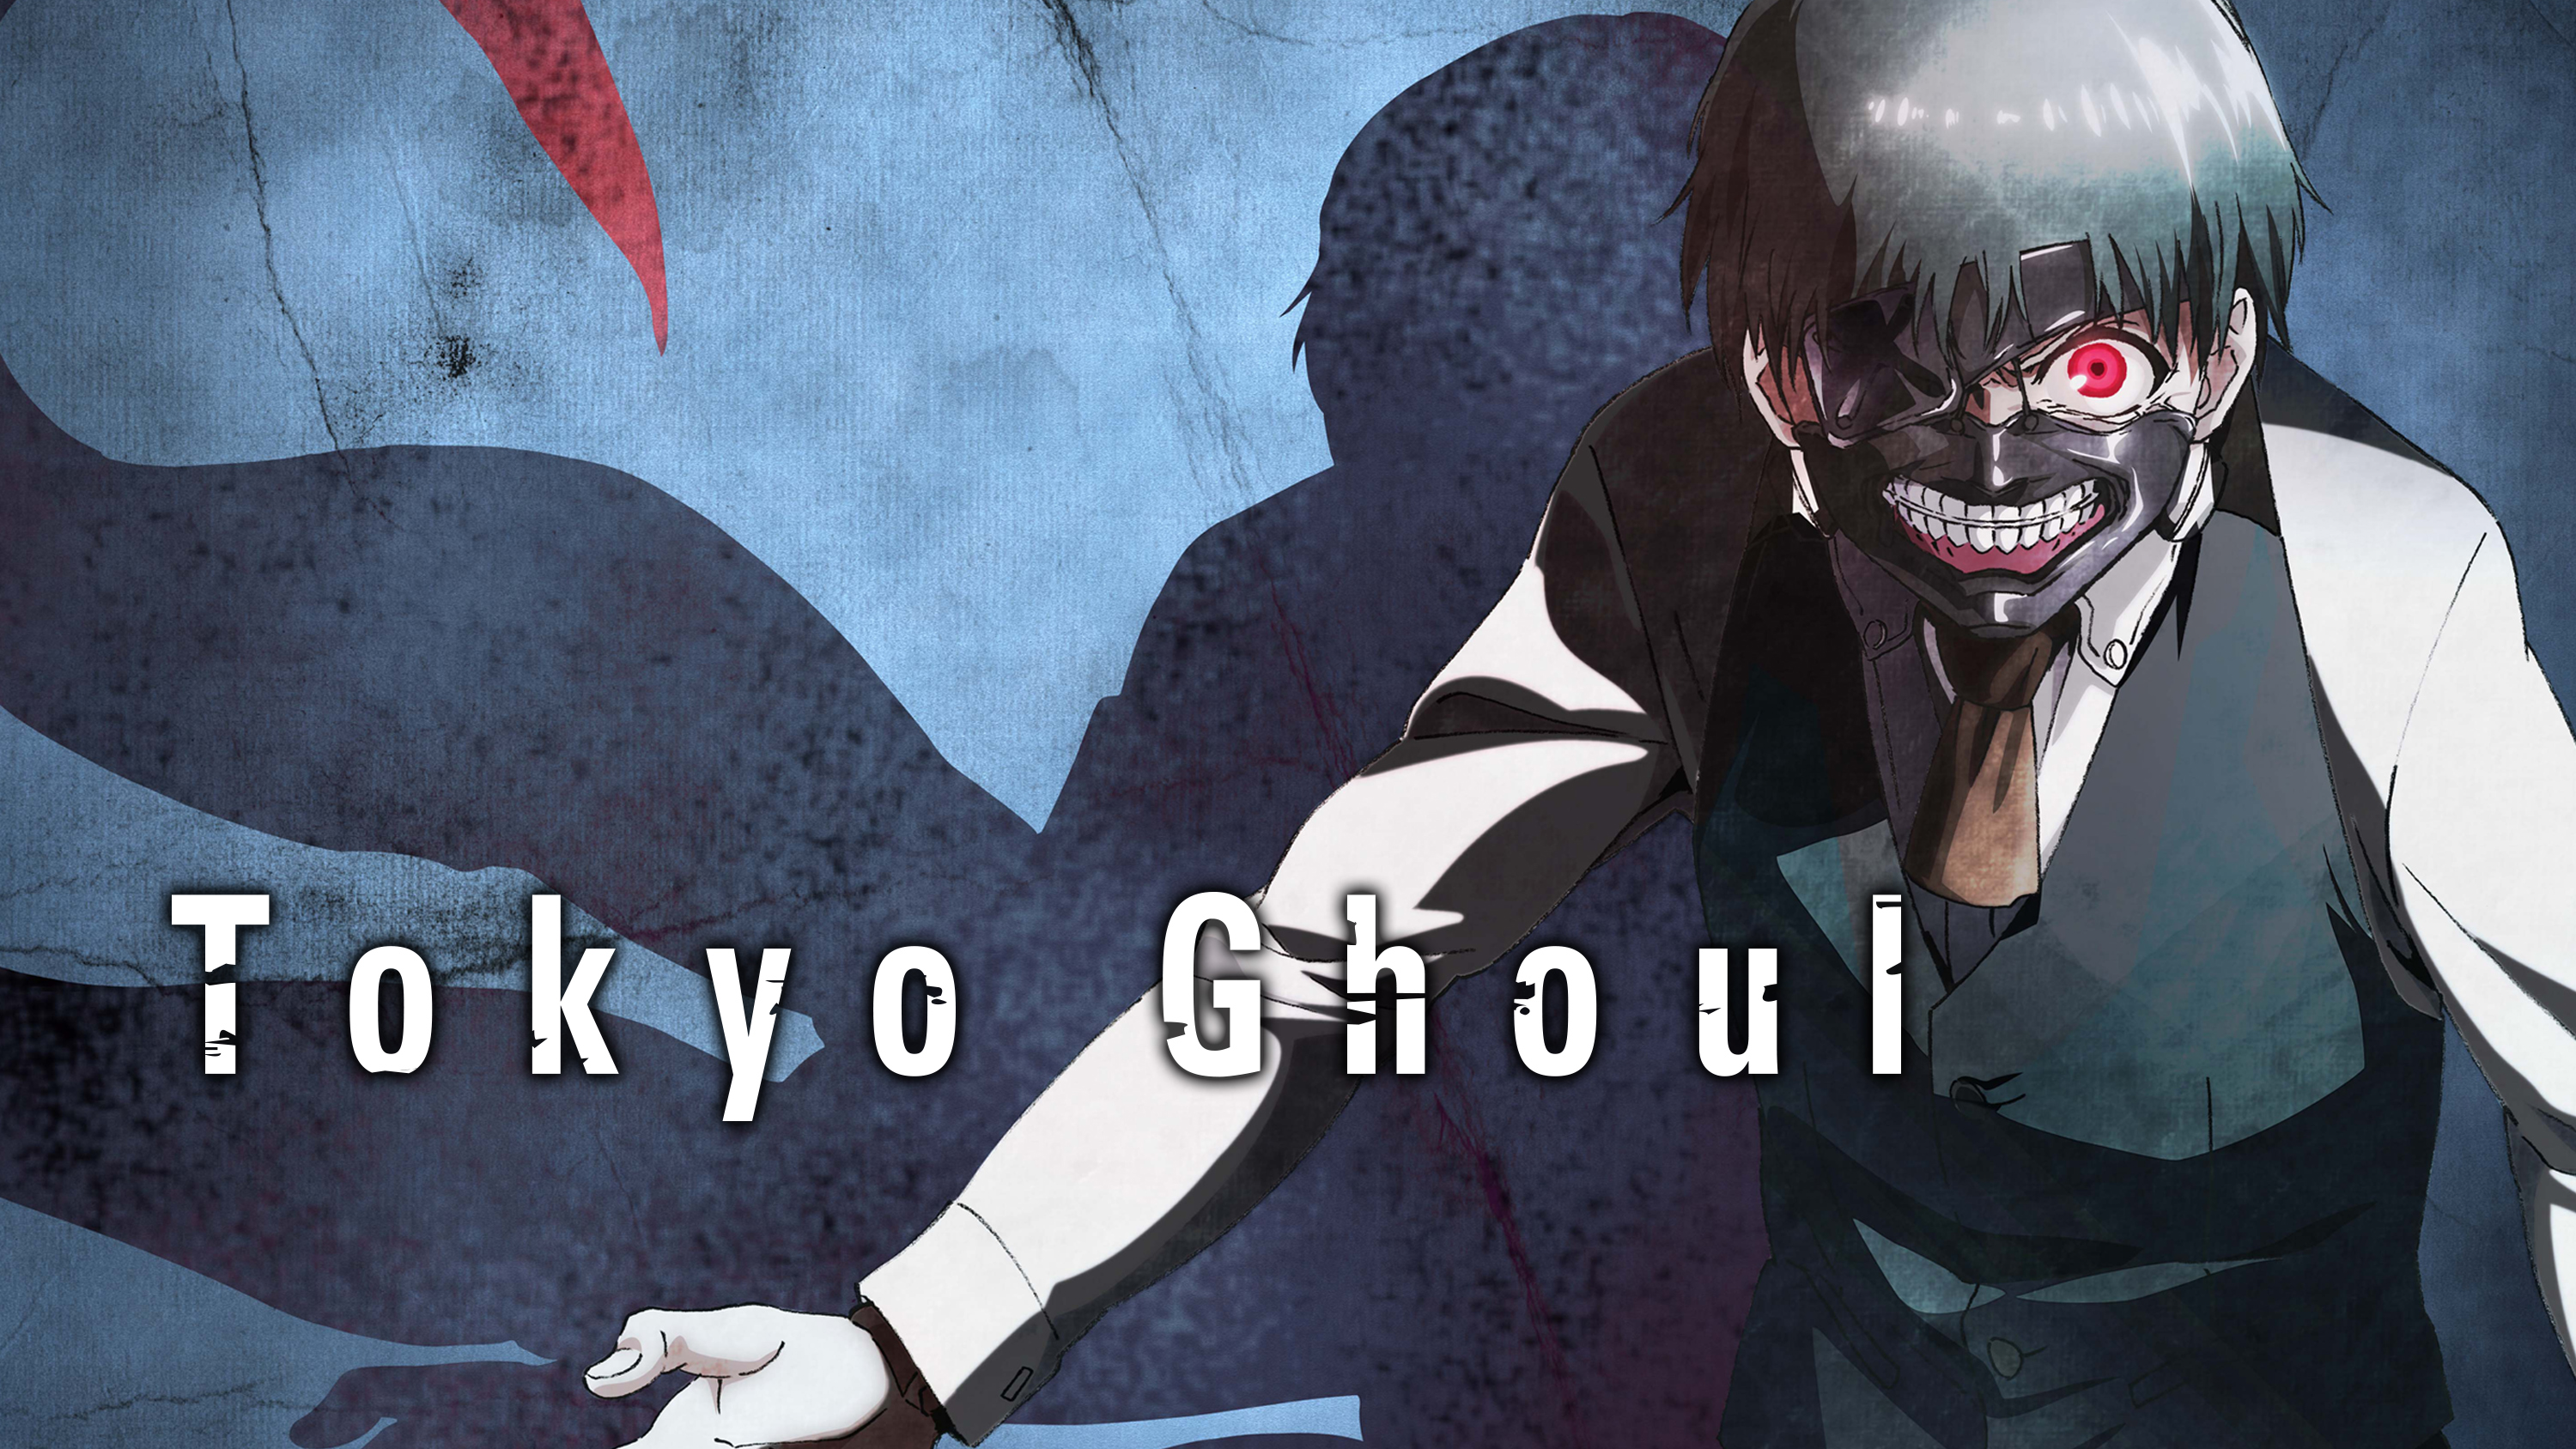 Watch tokyo ghoul episodes sub dub action adventure drama fantasy horror anime funimation